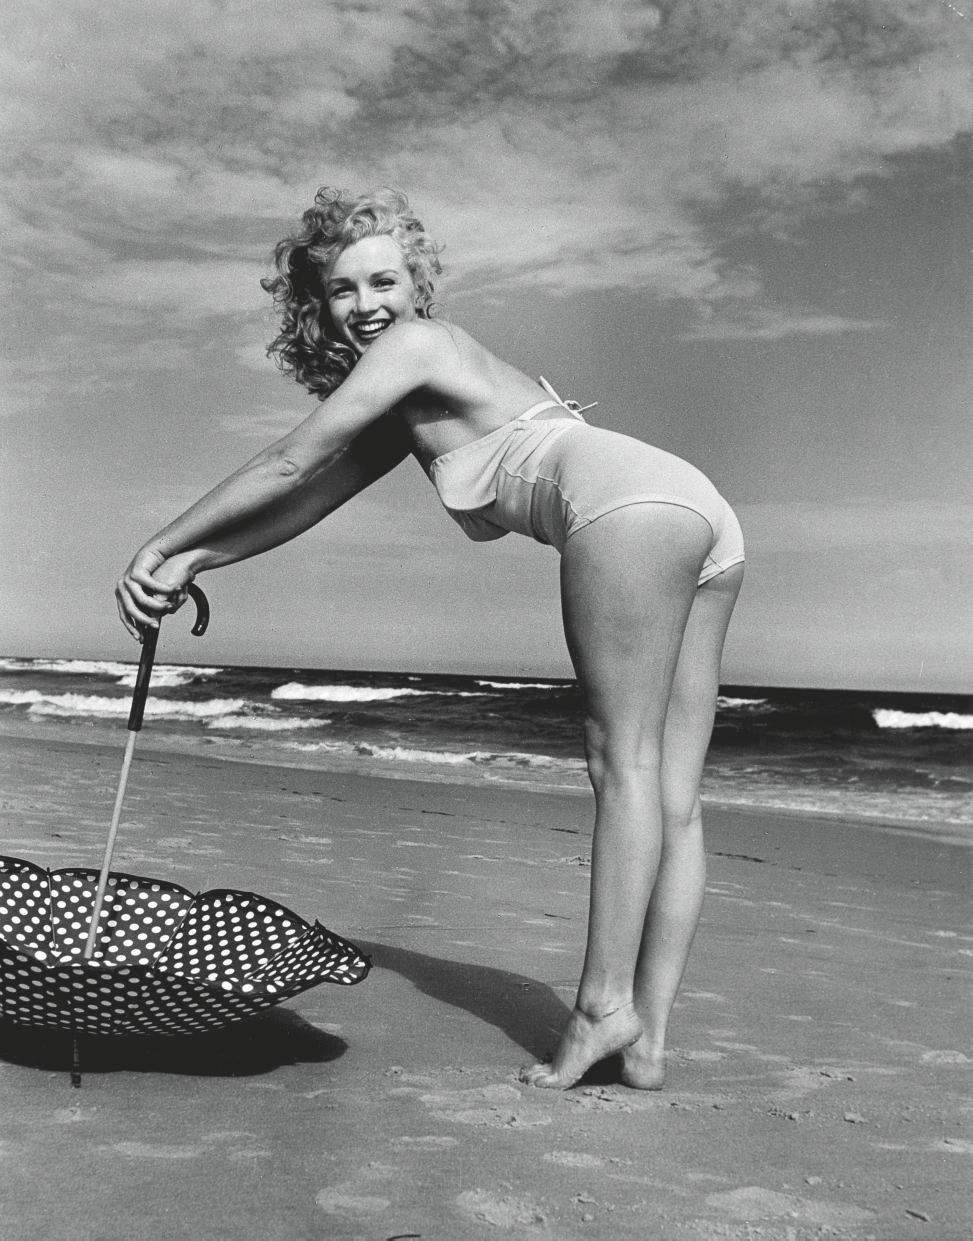 Marilyn Monroe, Tobey Beach, 1949